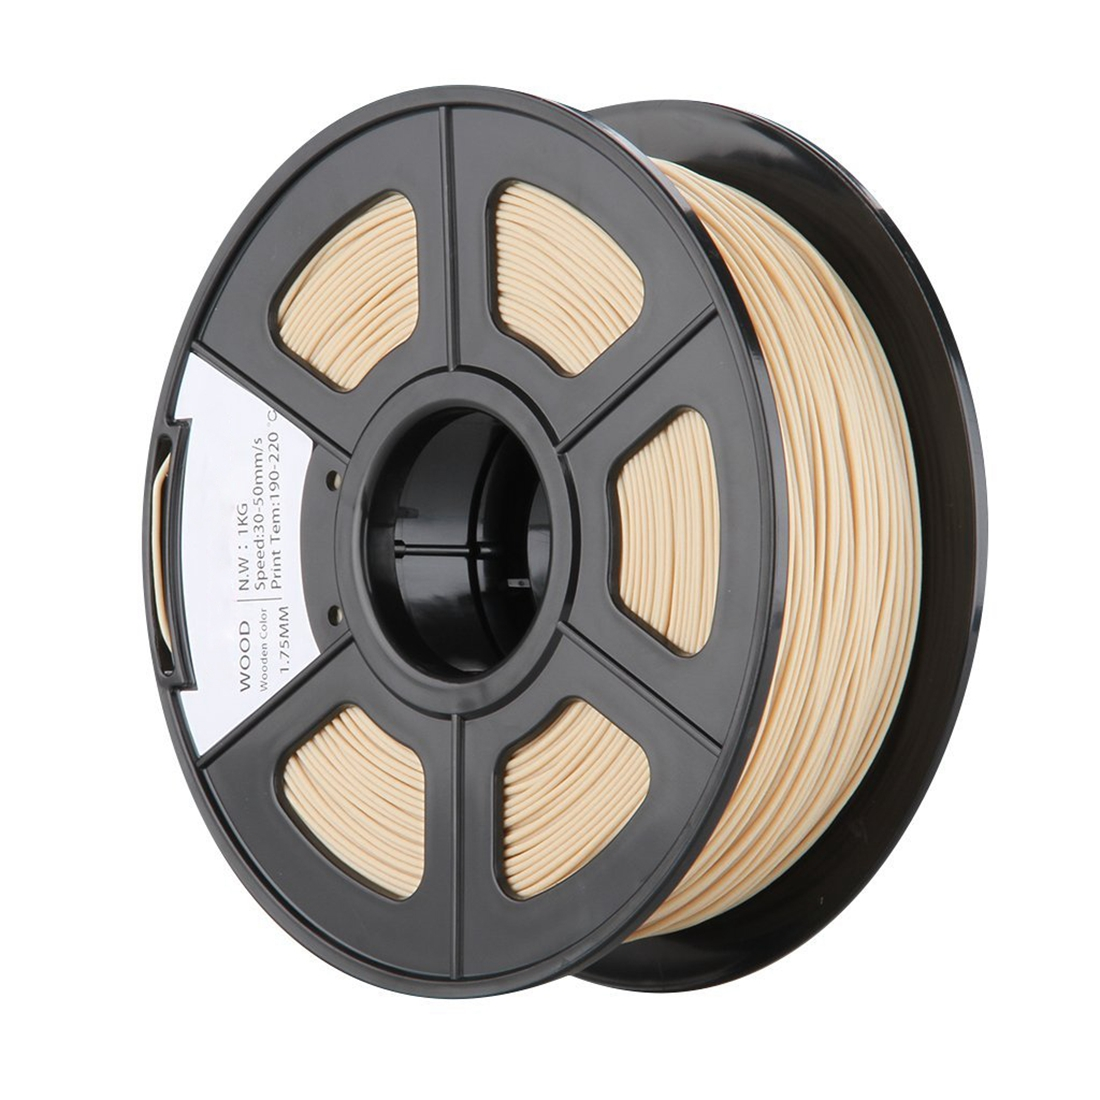 1.75mm/3mm Wood 3D Printer Filament 1kg Spool 2.2 lbs Dimensional Accuracy +/- 0.03mm for Print RepRap MarkerBot 3D Printing Pen 3d printer filament 1 75mm 3mm abs conductive color change pa nylon flexible 1kg 2 2lb for reprap markerbot